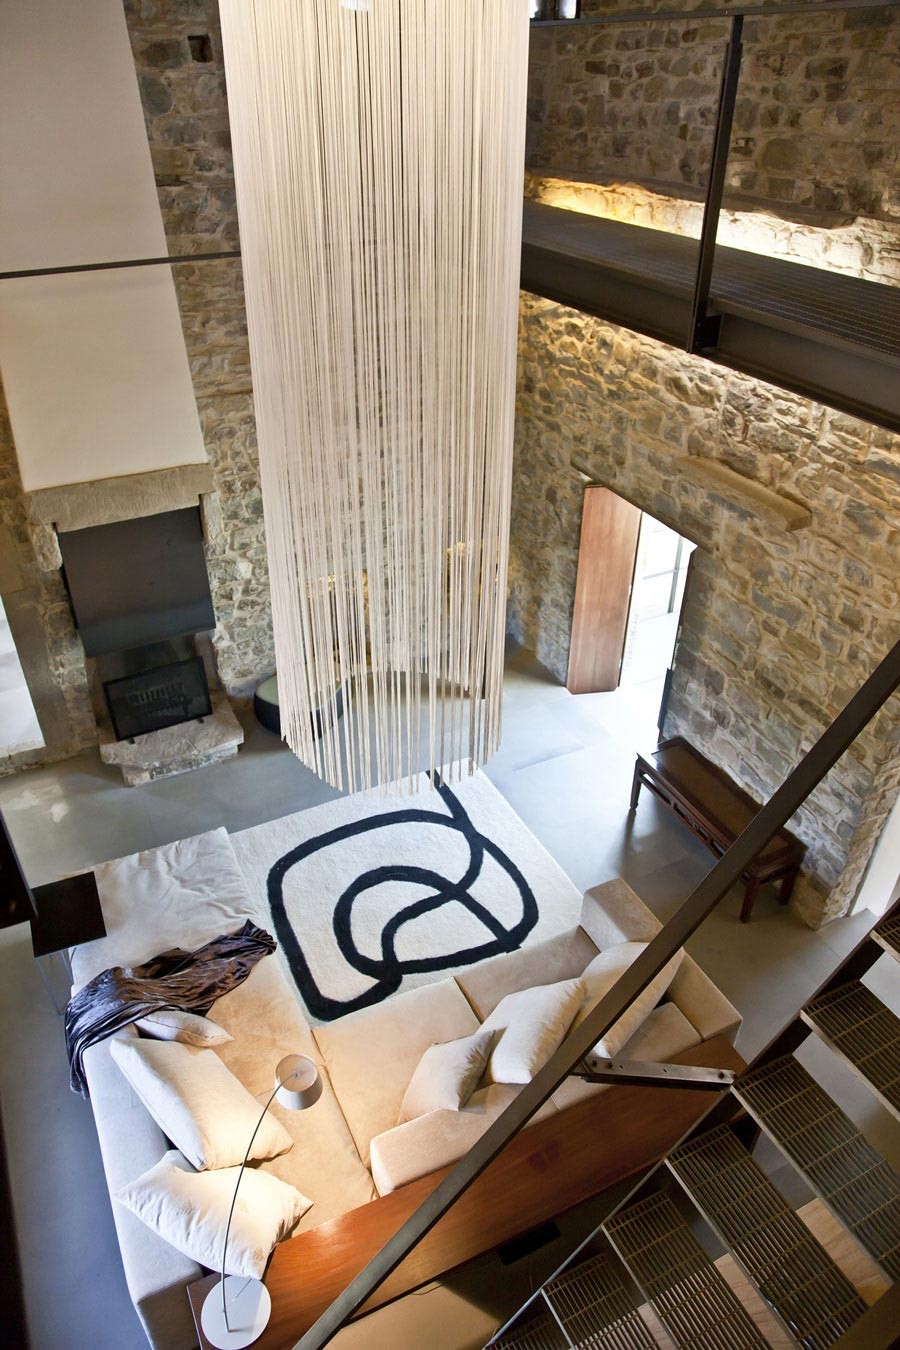 Sofa, Rug, Lighting, Stone Walls, Fireplace, Torre Moravola Boutique Hotel in Montone, Italy